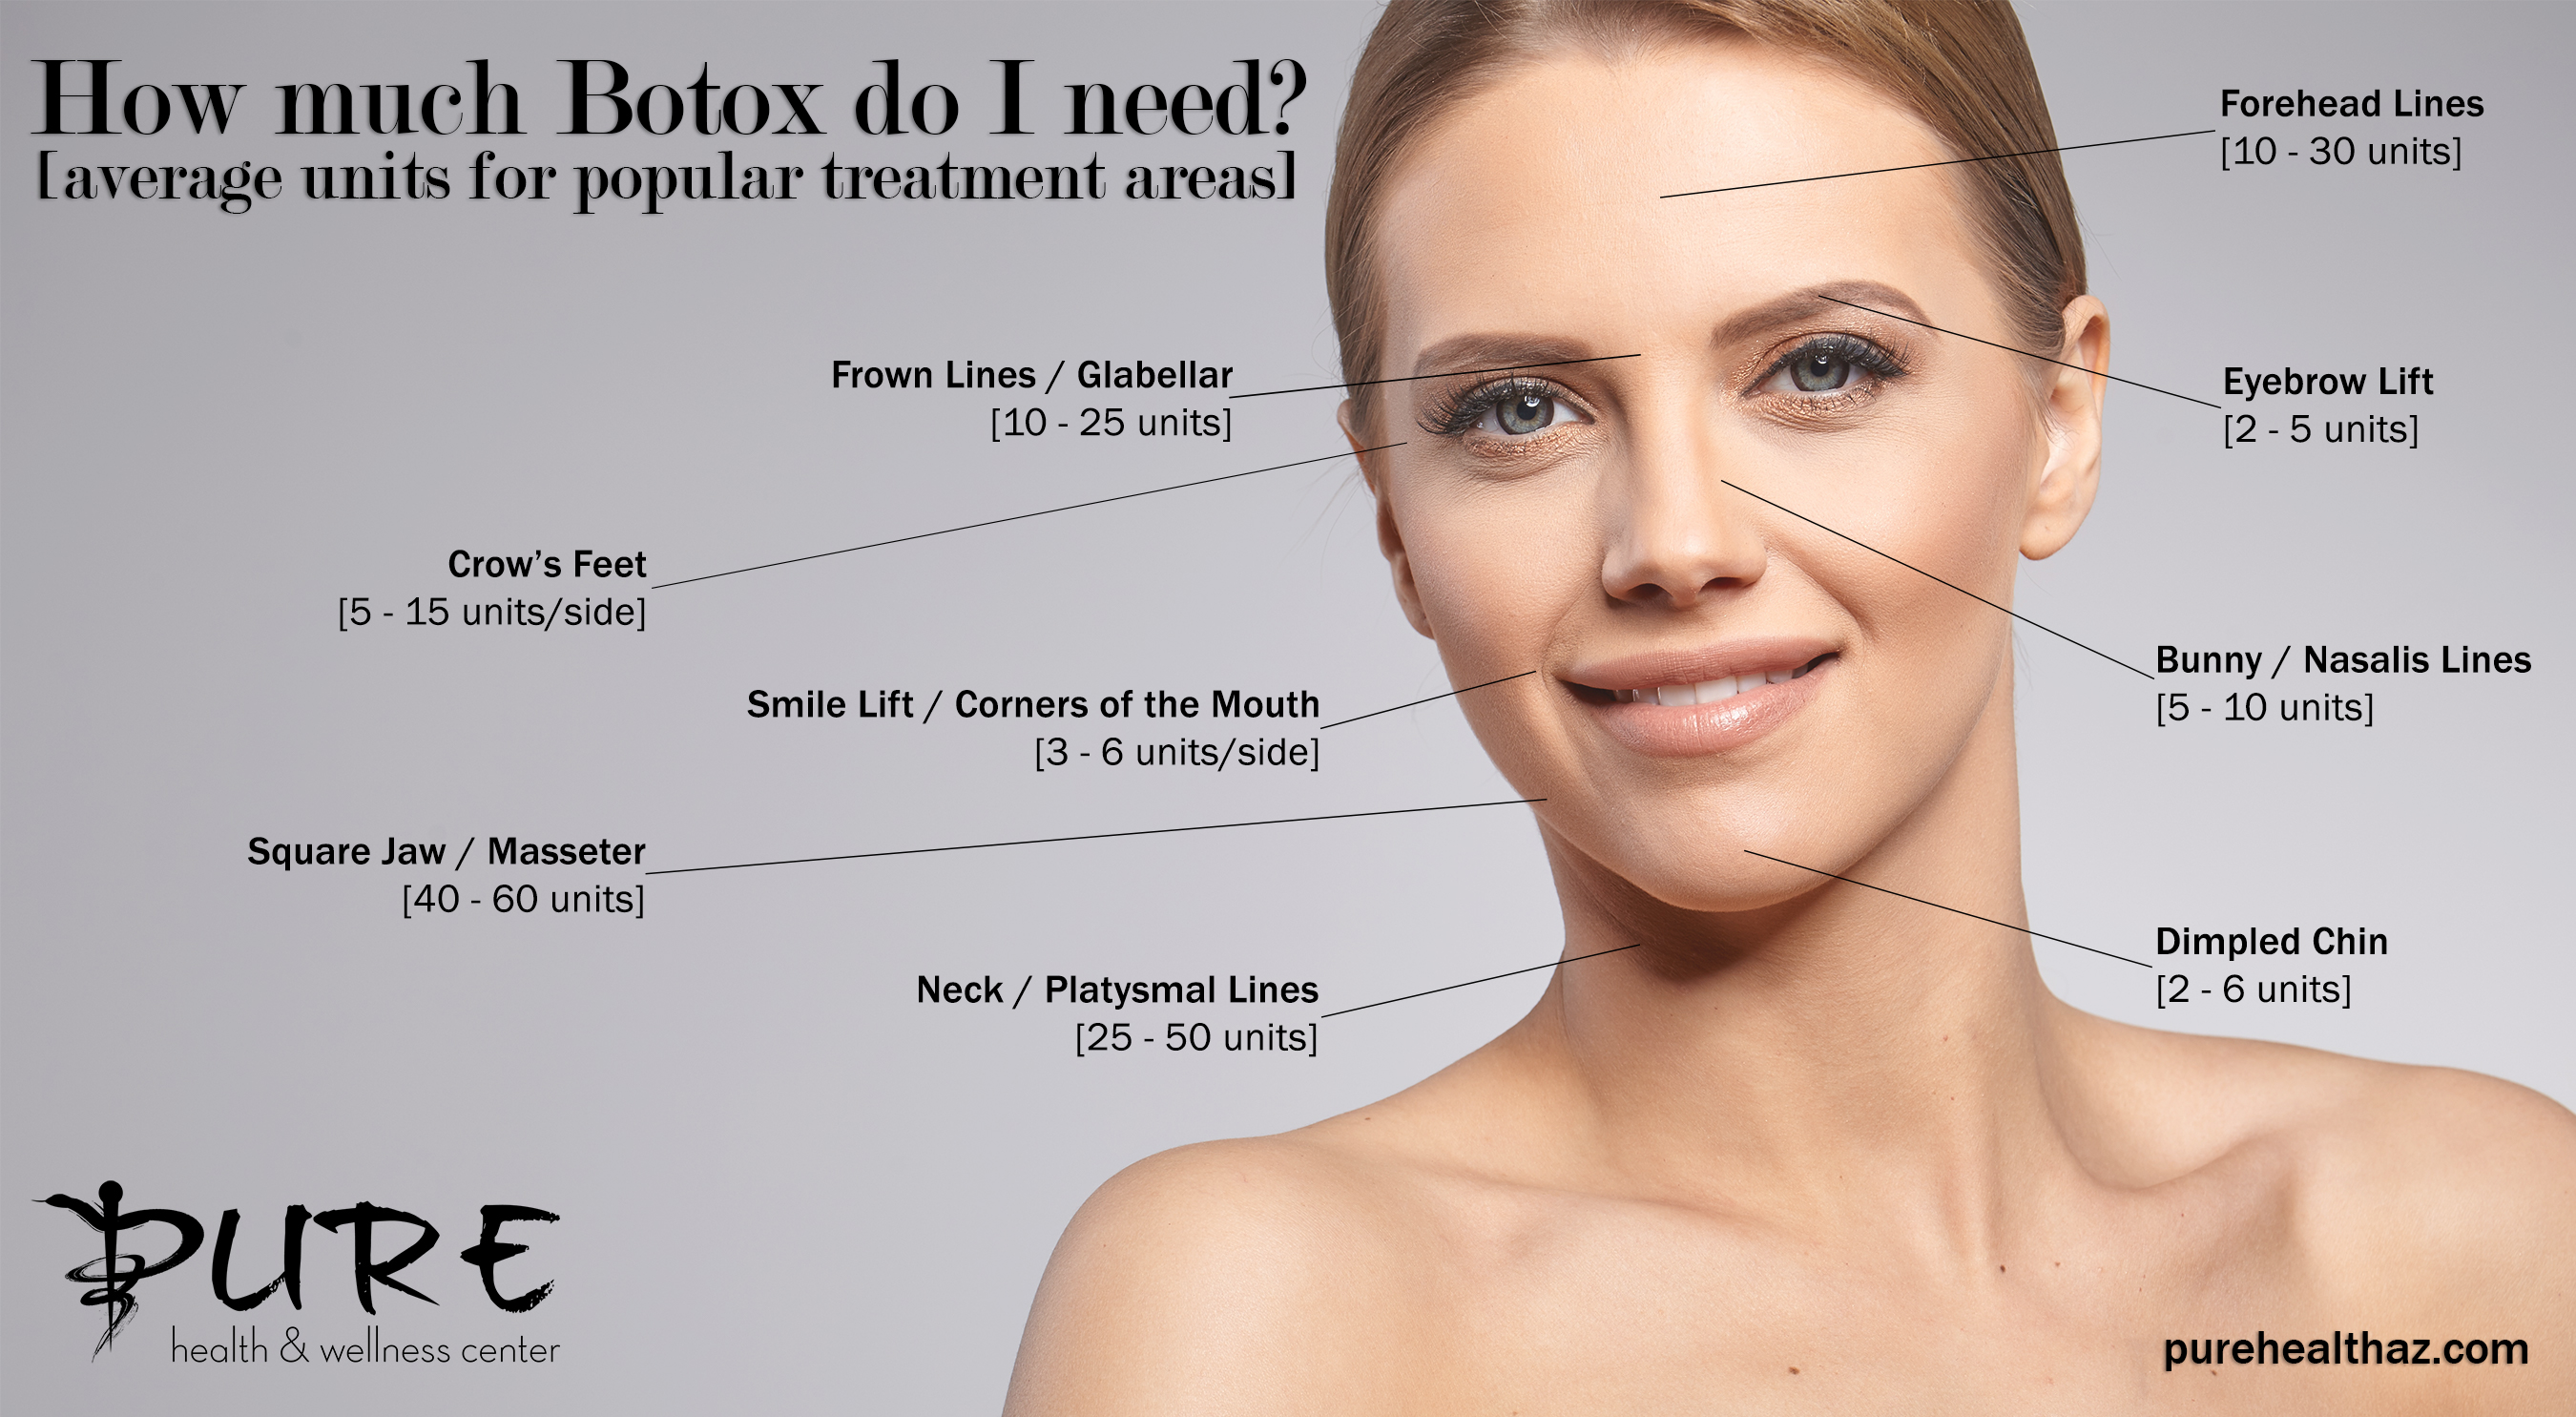 How many botox units do you need for specific treatment areas? | Pure Health